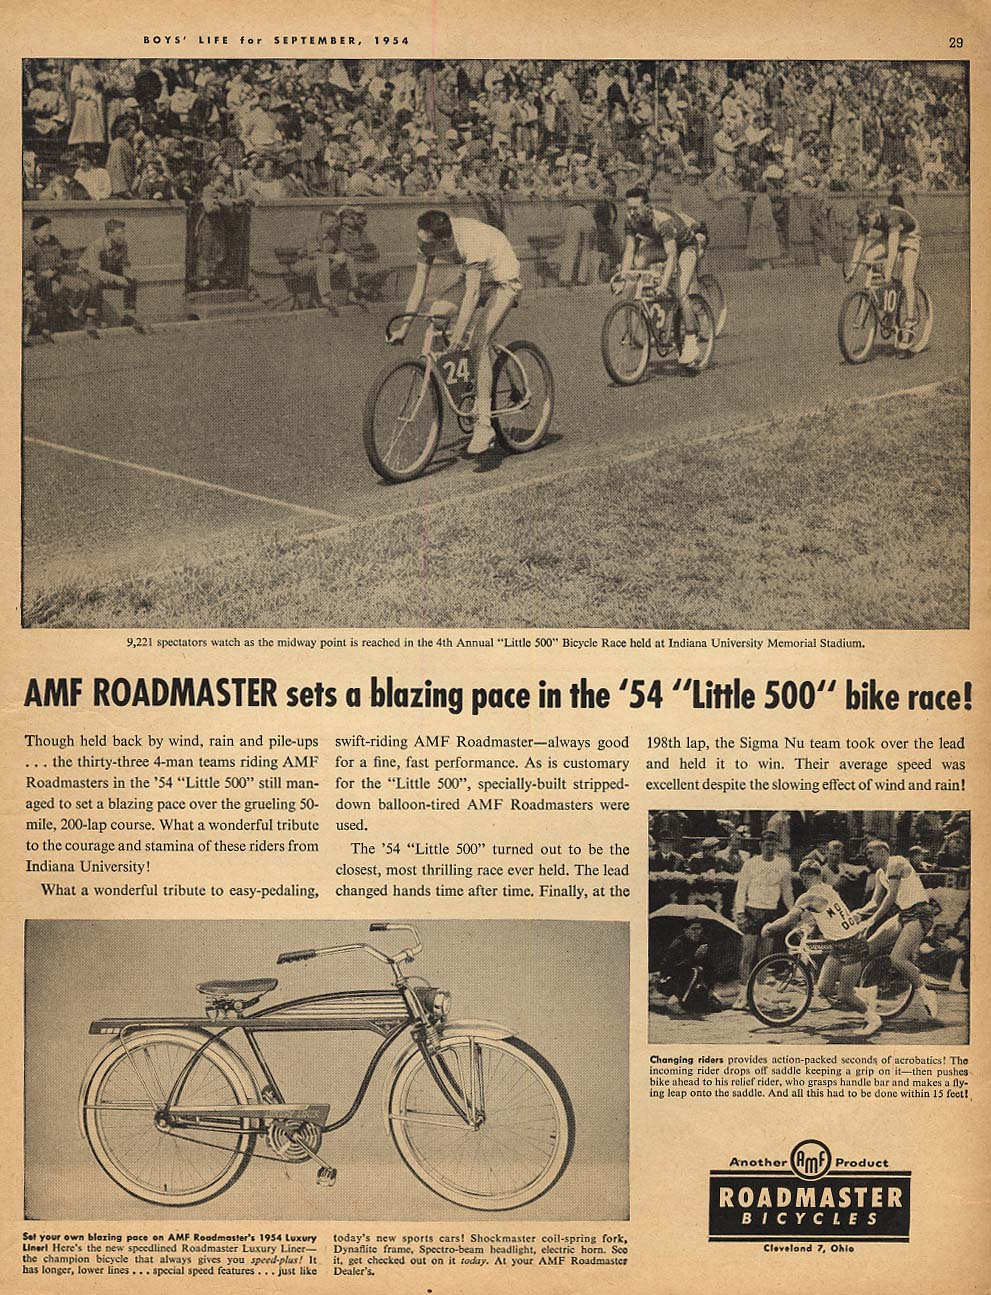 AMF Roadmaster Bicycle sets a blazing pace in the Little 500 race ad 1954